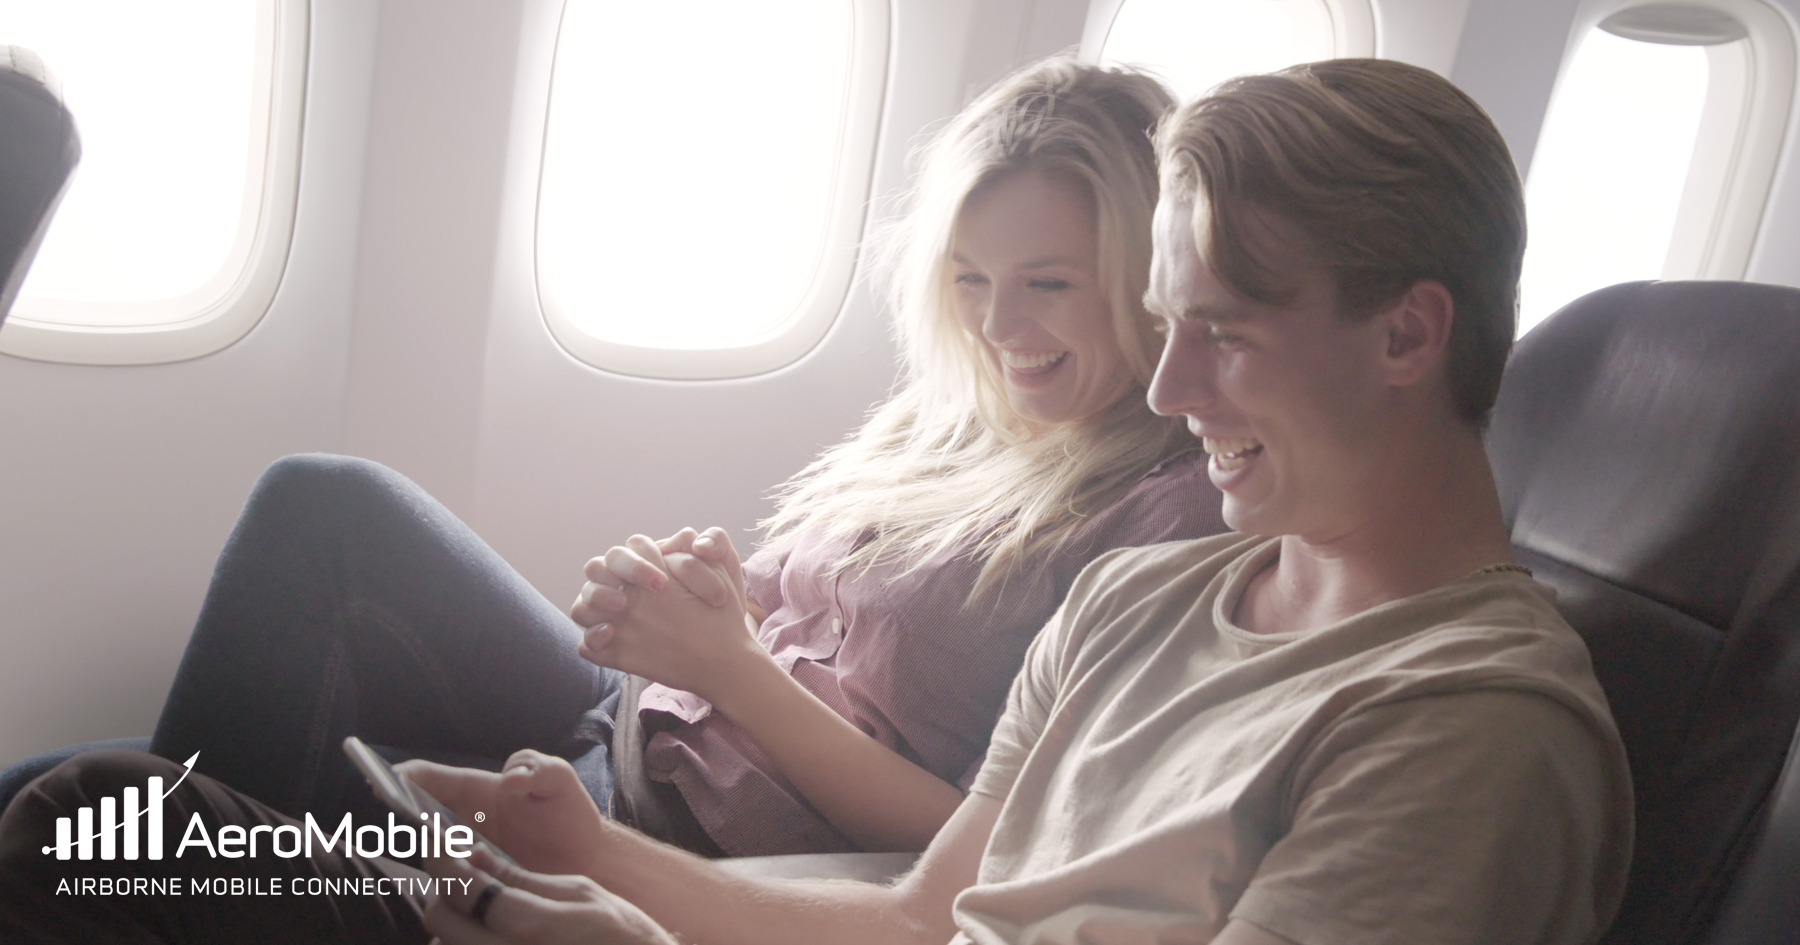 Inflight Connectivity From 20,000FT | Onboard WiFi | AeroMobile